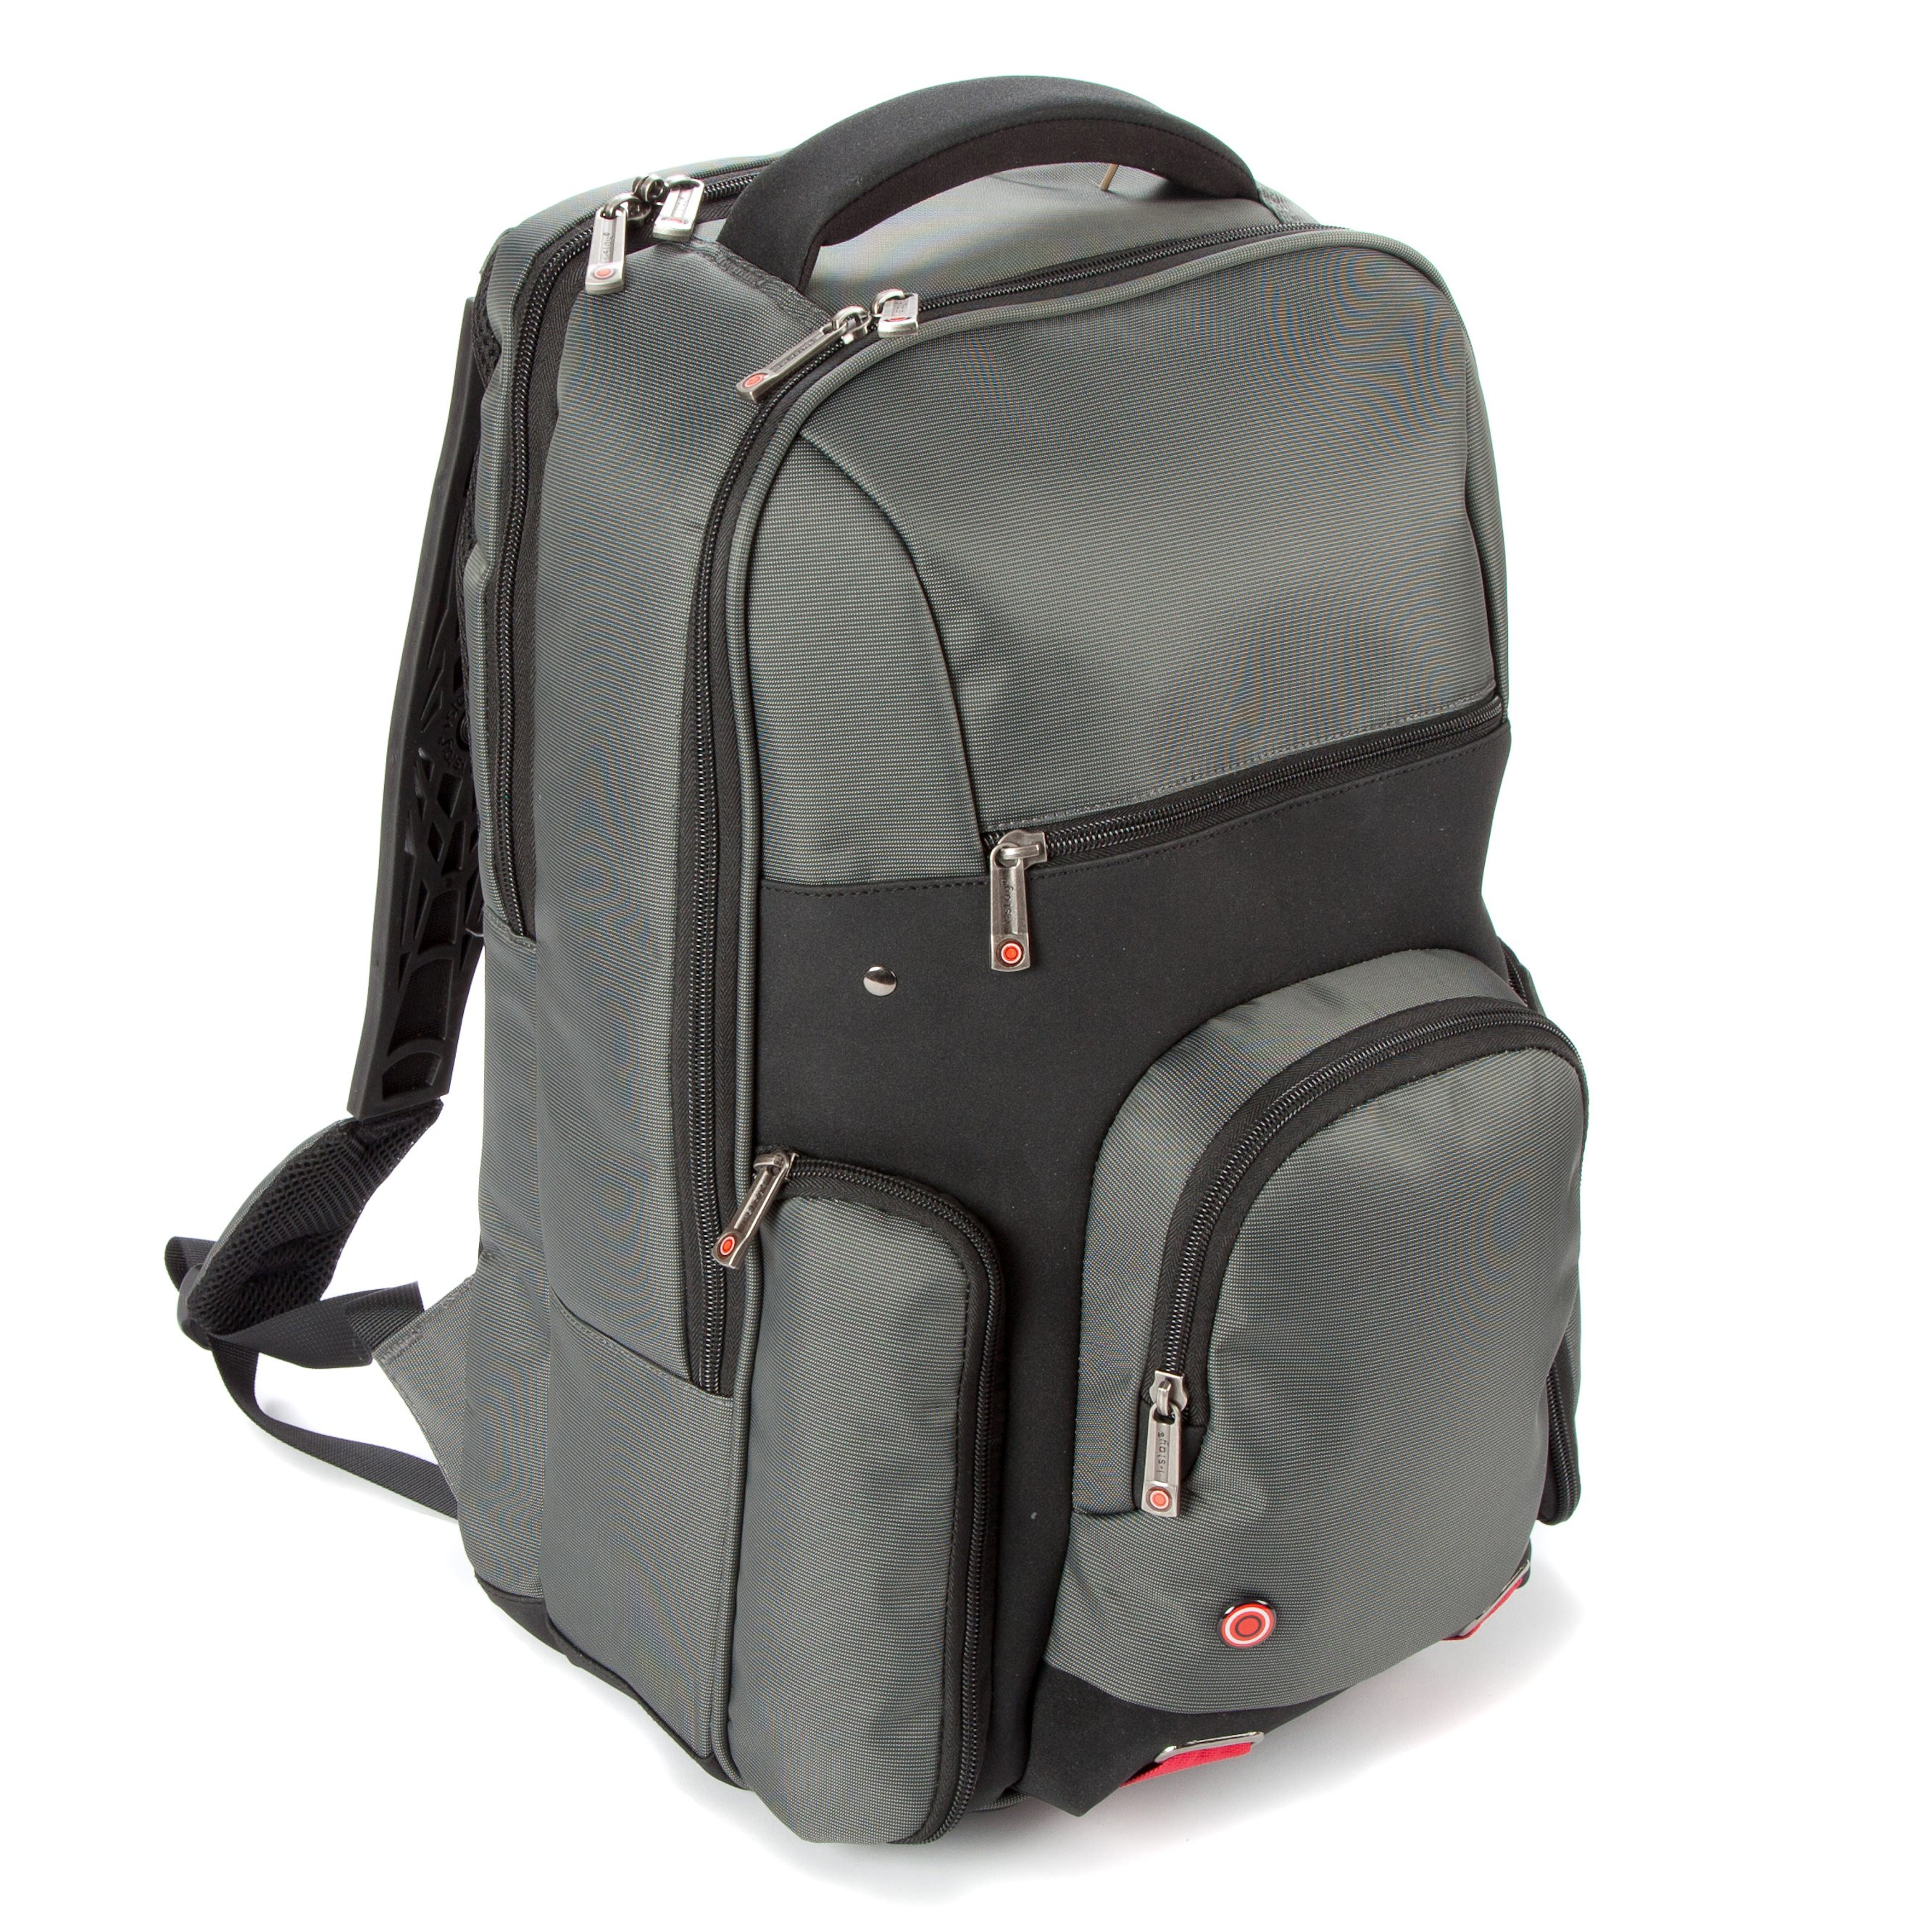 Falcon Bags 15'' Laptop Tablet Ergonomic Backpack Grey/Black